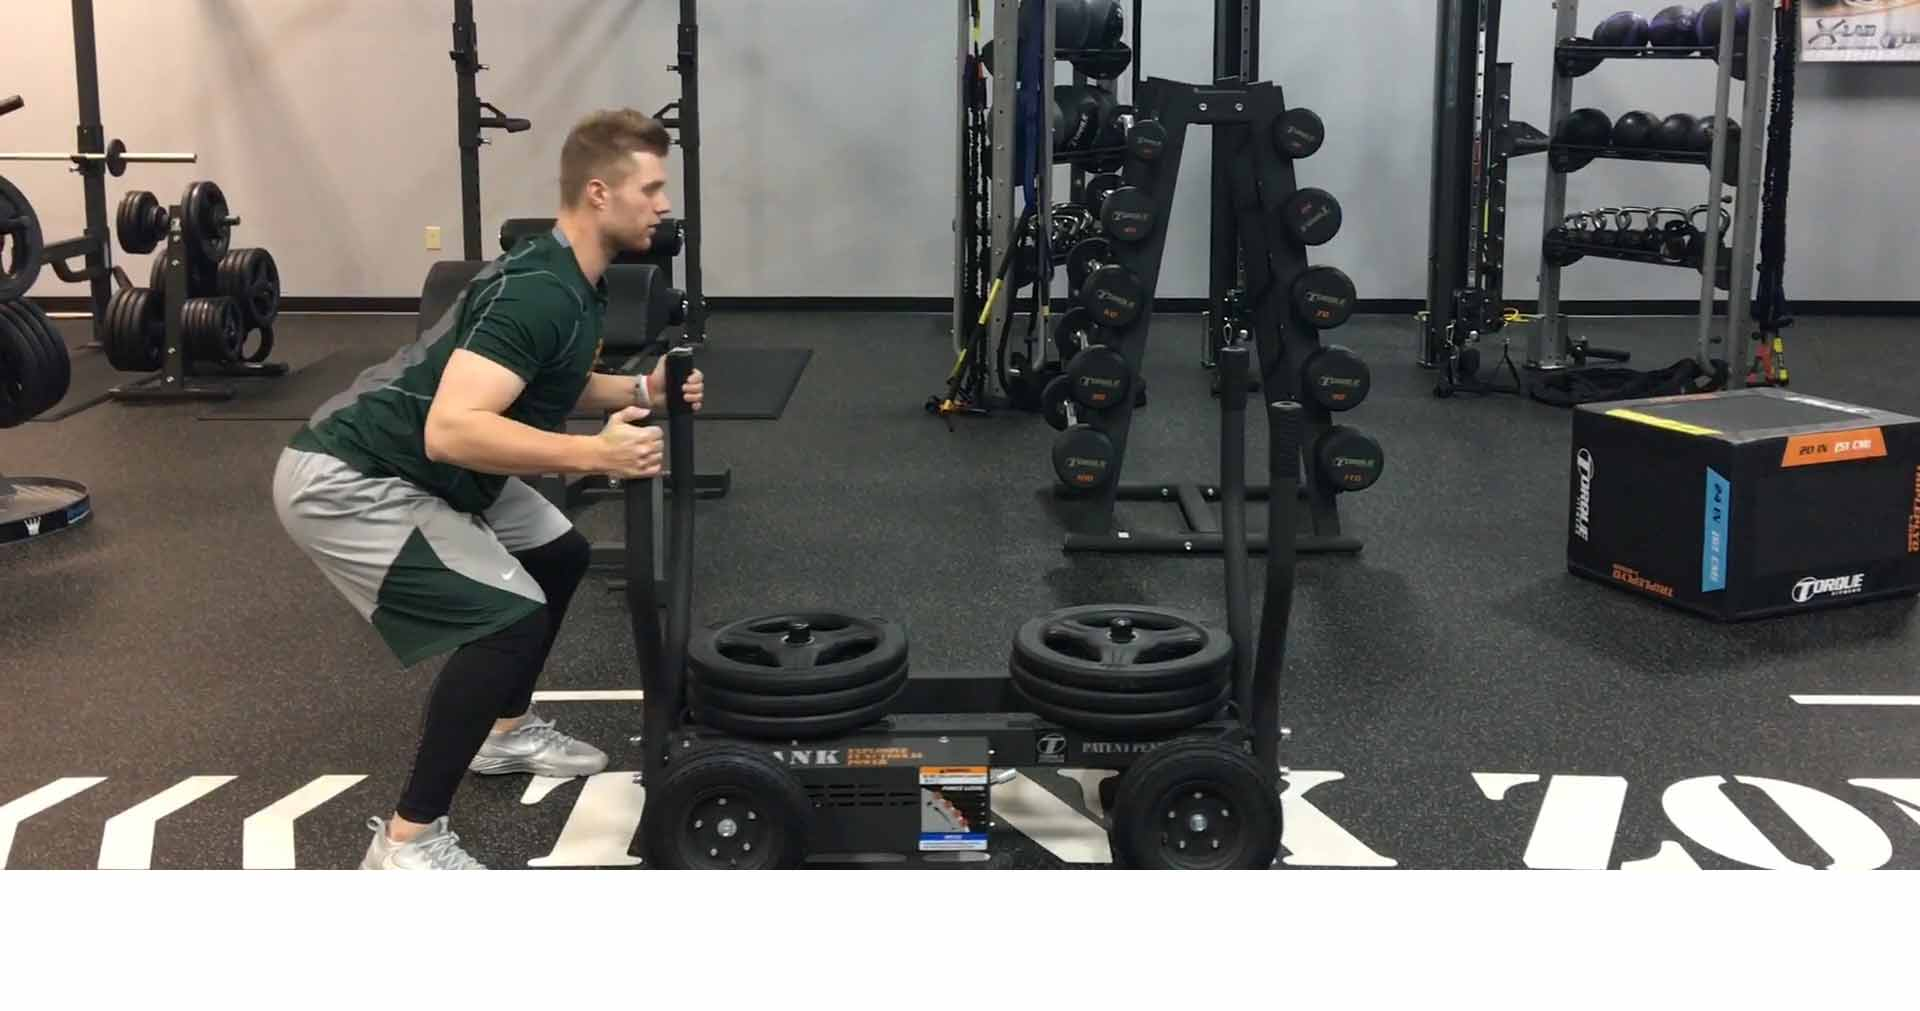 The Benefits of Rowing Exercises for Baseball with Logan Shore